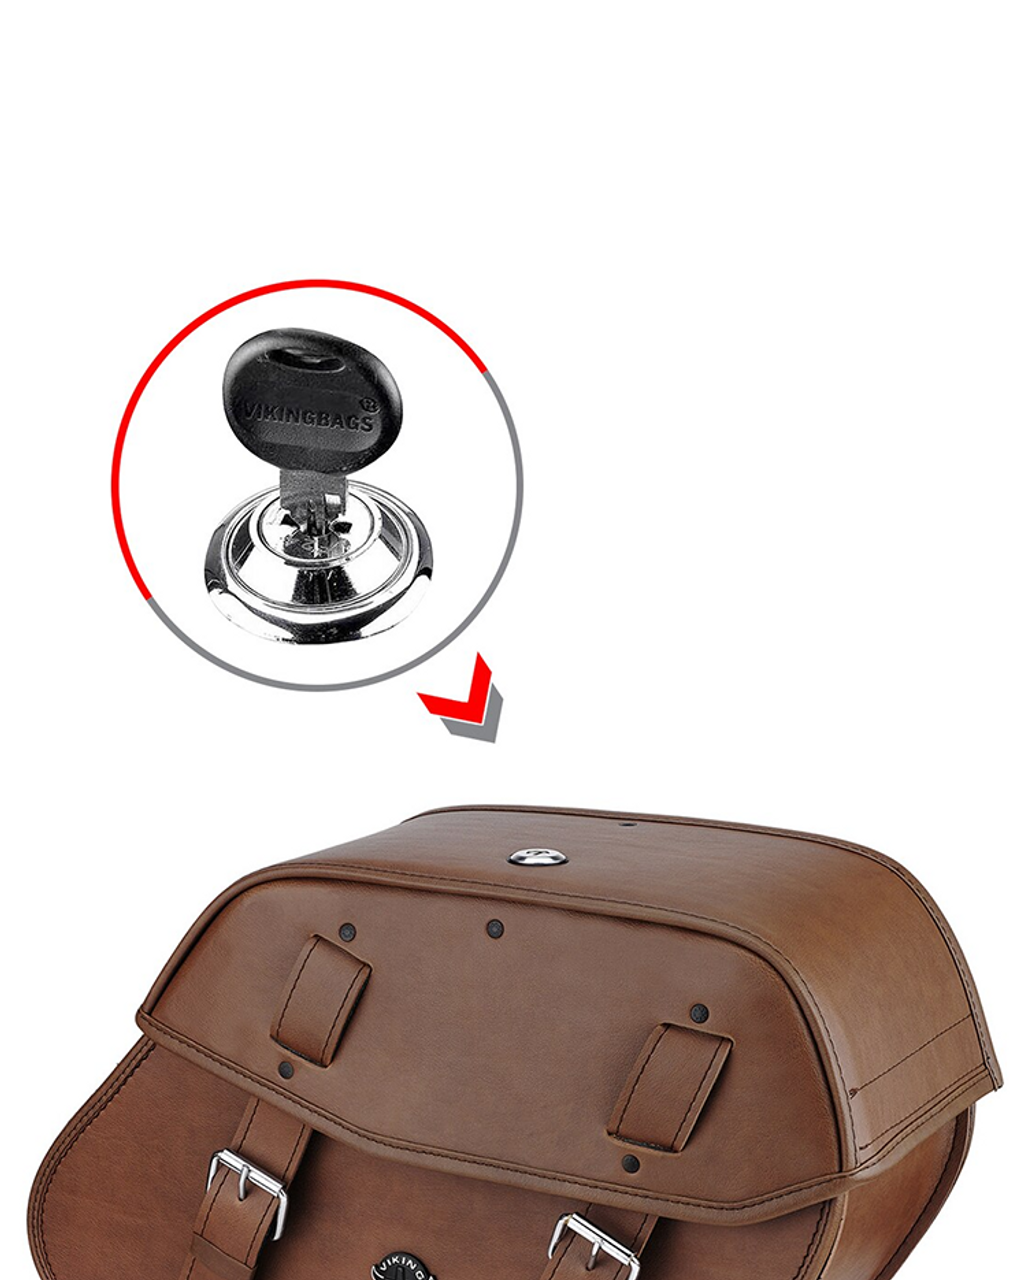 VikingBags Odin Brown Large Double Strap Leather Motorcycle Saddlebags For Harley Softail Breakout 114 FXBRS Key Lockable View